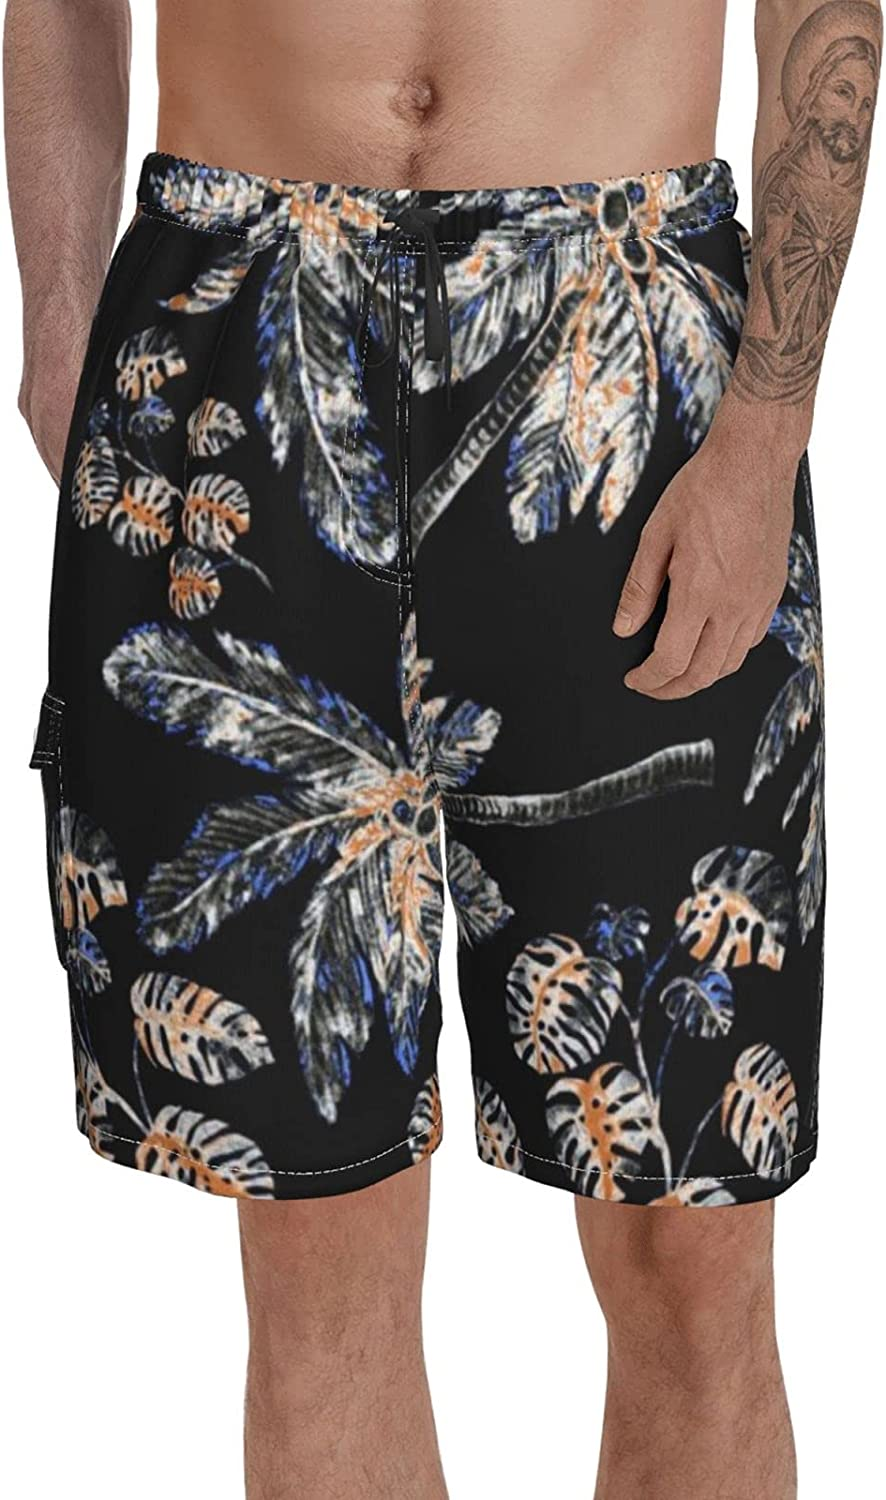 Printed Swimming Trunks for Men Beach Shorts Watercolor Palms Modern Elastic Waist Bathing Suits for Summer